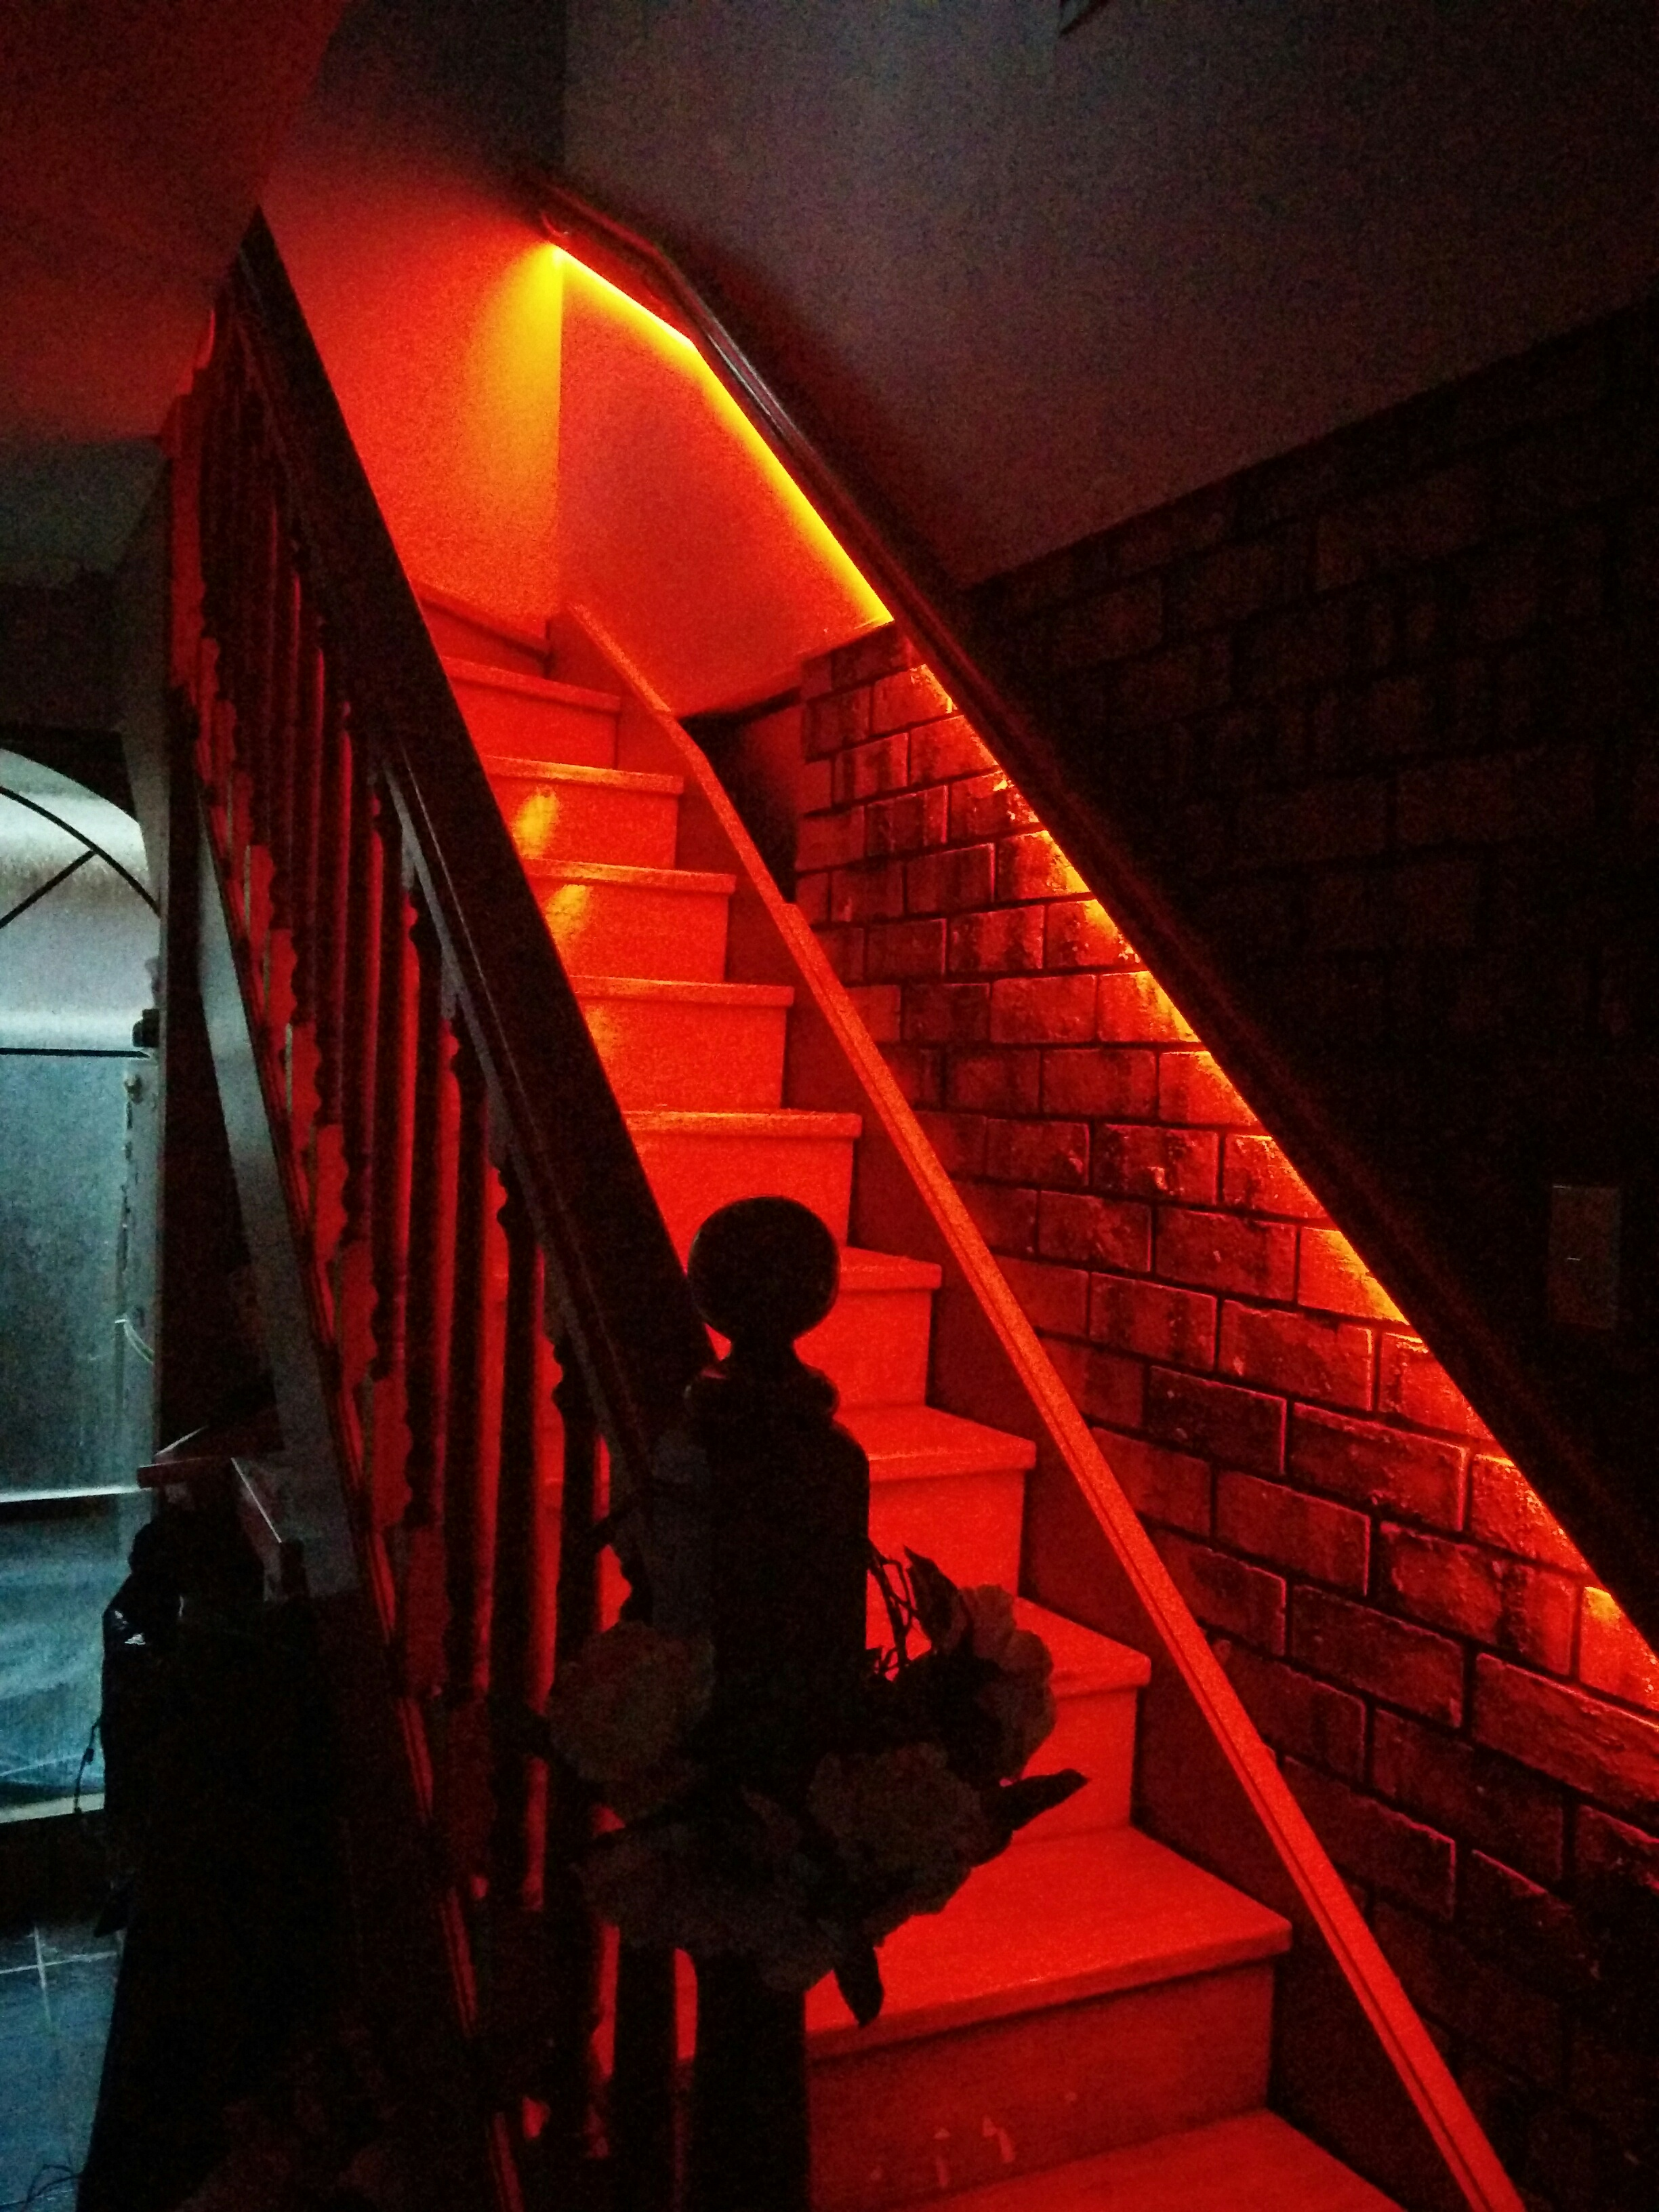 Lighting Basement Washroom Stairs: Philips Hue Light Strip Hack Using 5050 RGB SMD For Stairs